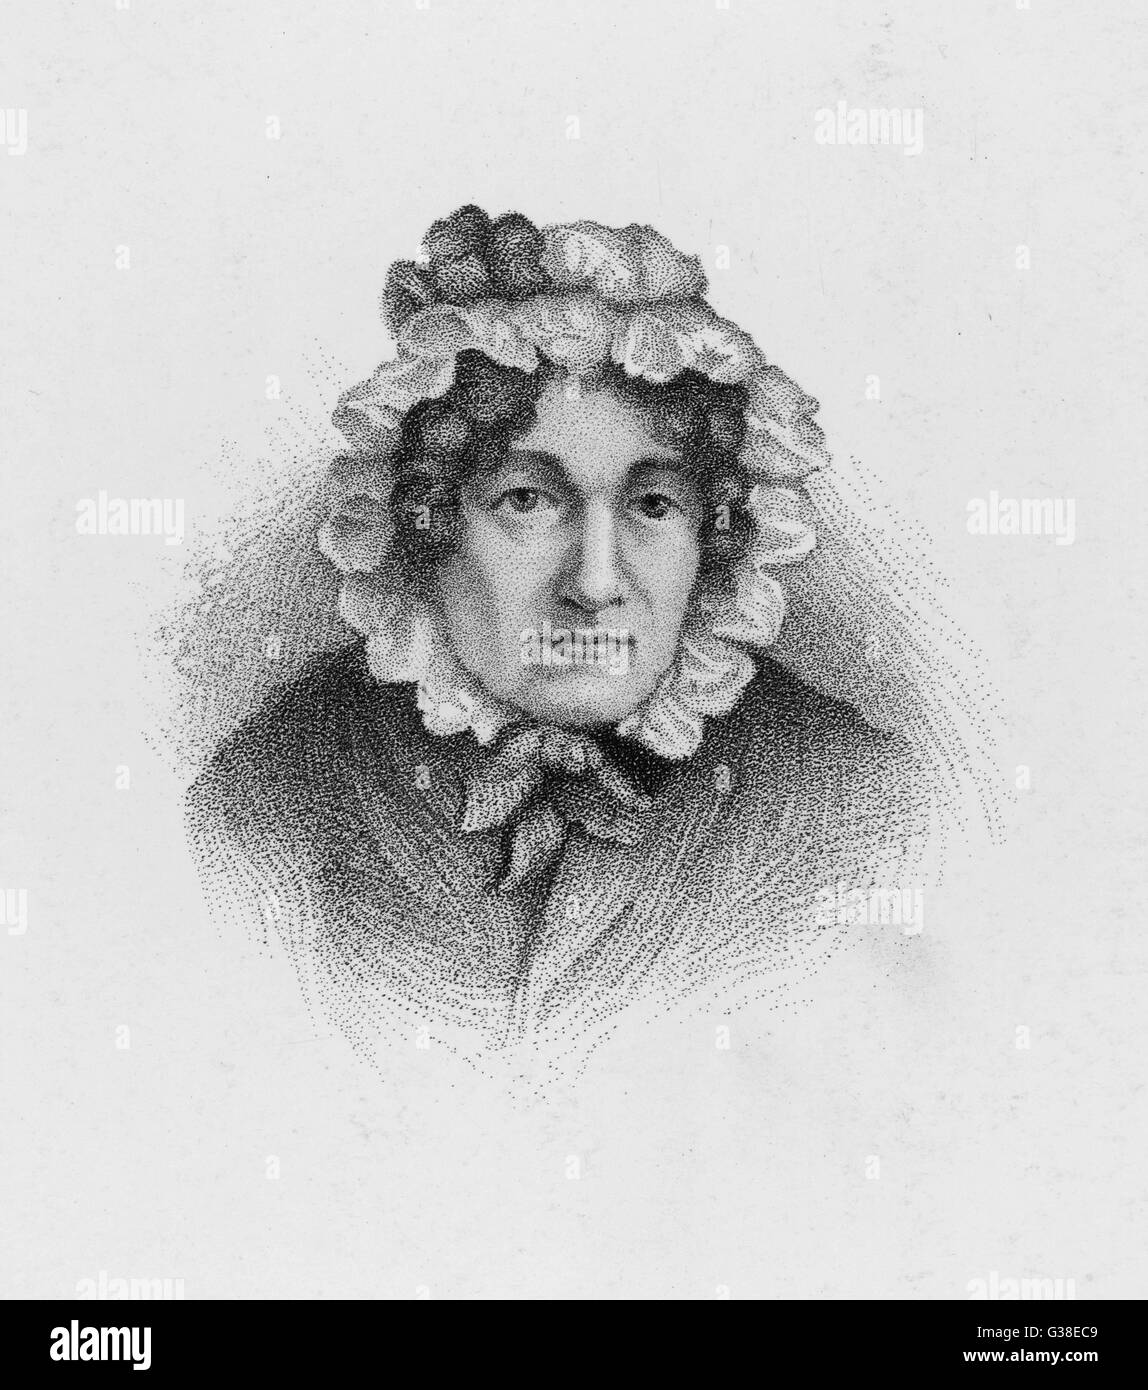 charles lamb stock photos charles lamb stock images alamy mary lamb english writer and sister of charles lamb date 1764 1847